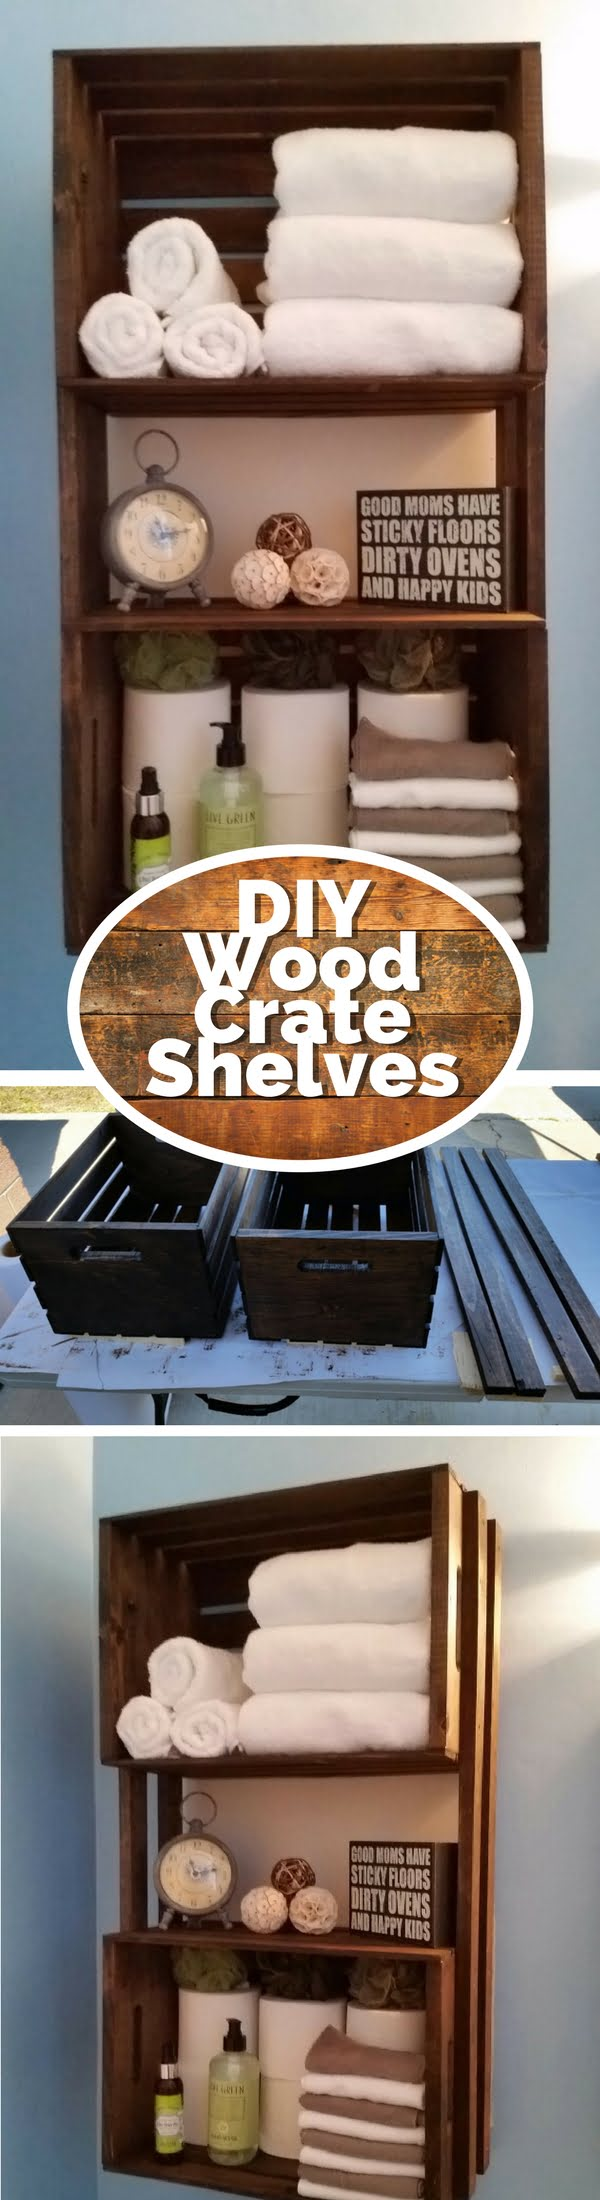 15 Brilliant DIY Crafts You Can Make with Wood Crates - Check out how to build a DIY rustic towel rack from wood crates